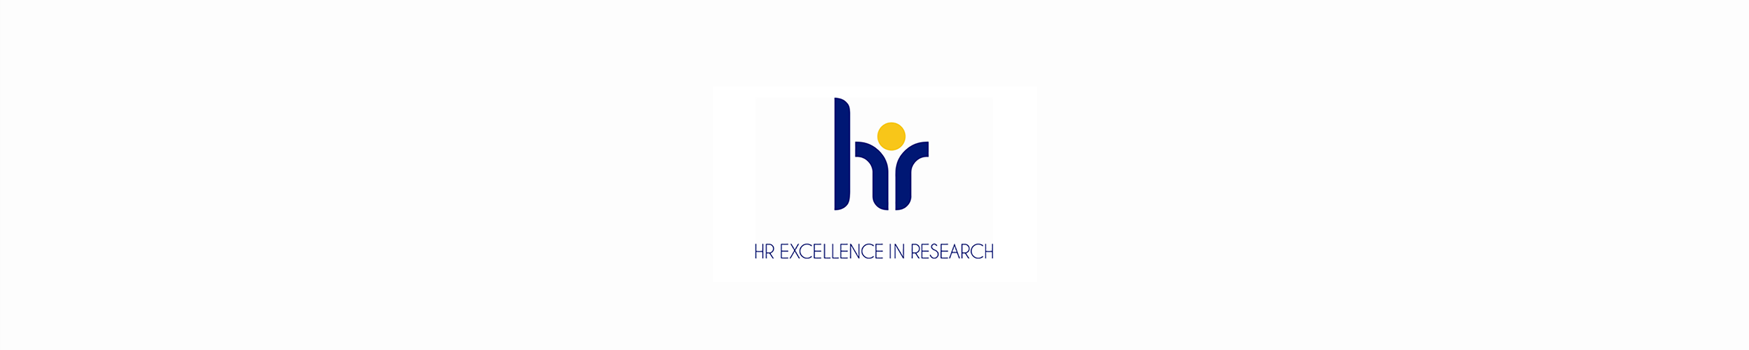 Banner HR EXCELLENCE IN RESEARCH